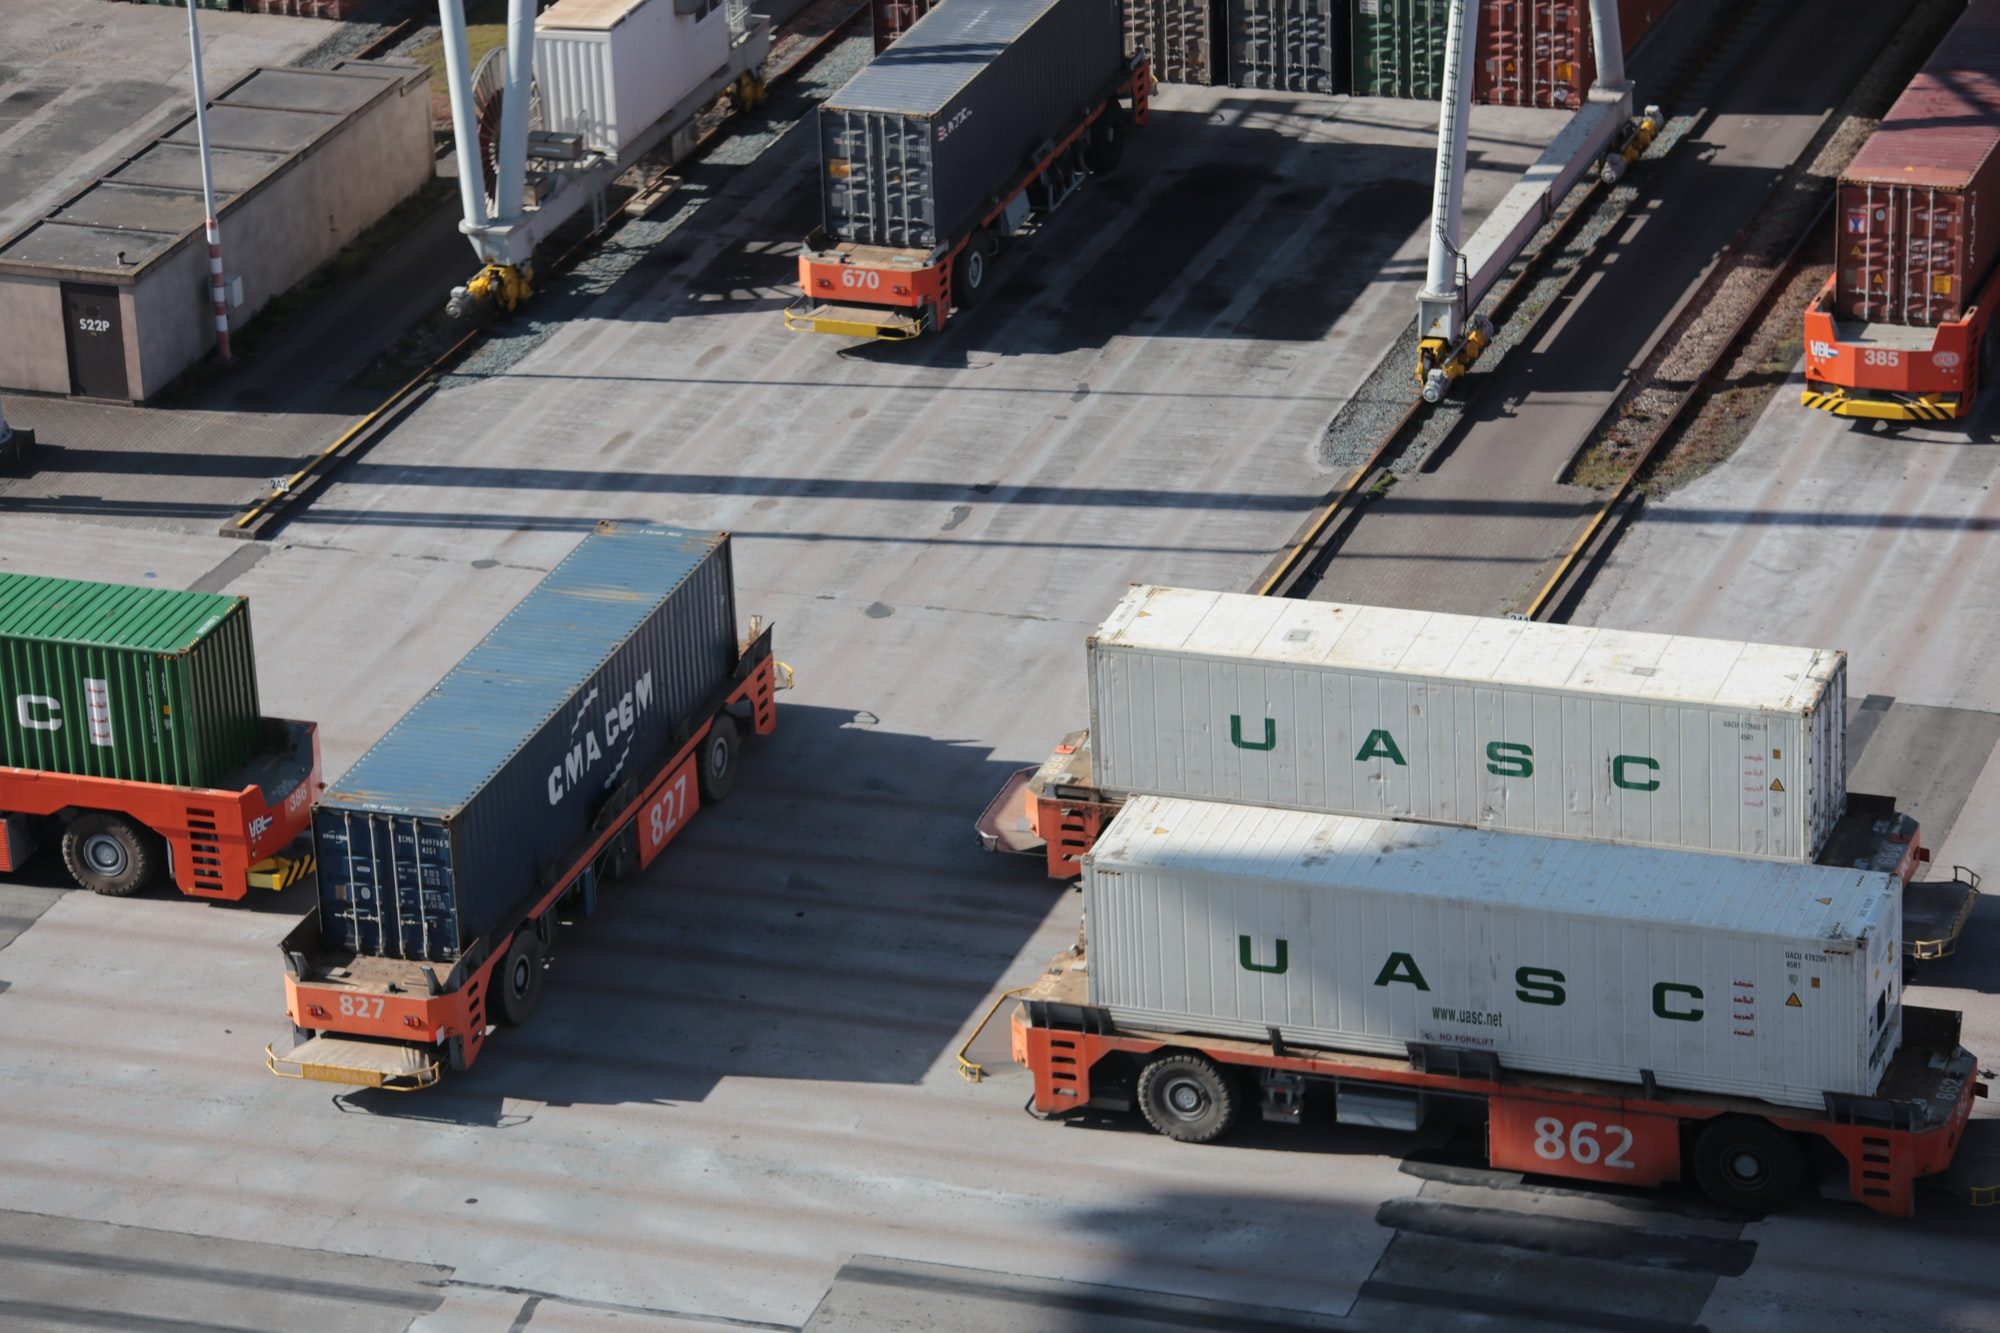 How do smaller shippers compete?